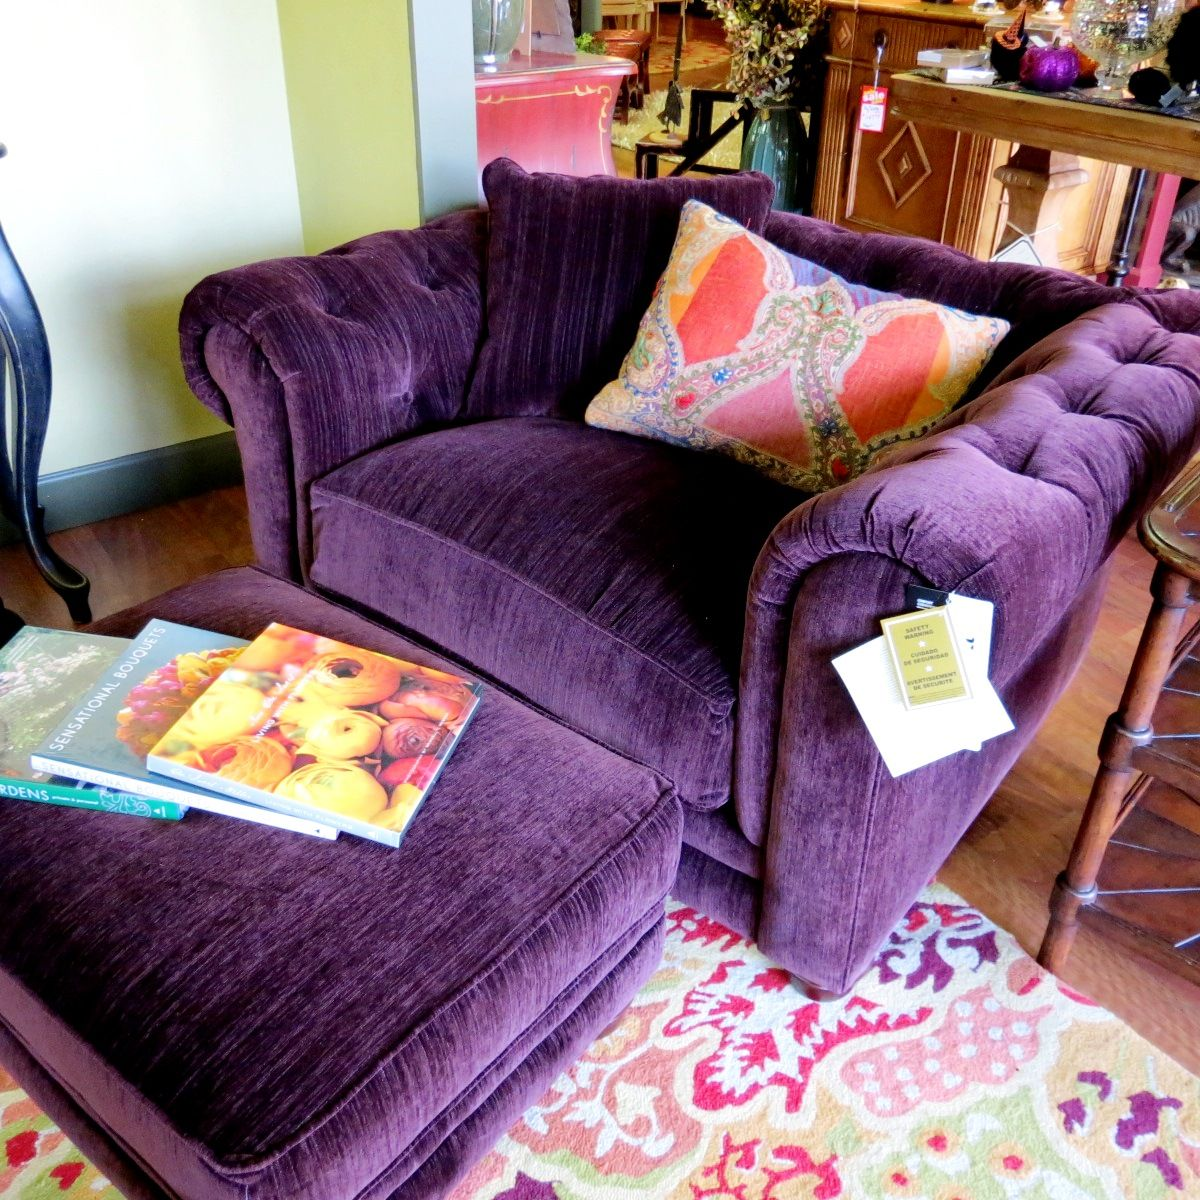 Formidable Purple Chair Reading This Purple Chair This Would Be My Spot To Read Purple Bedroom Reading Chair